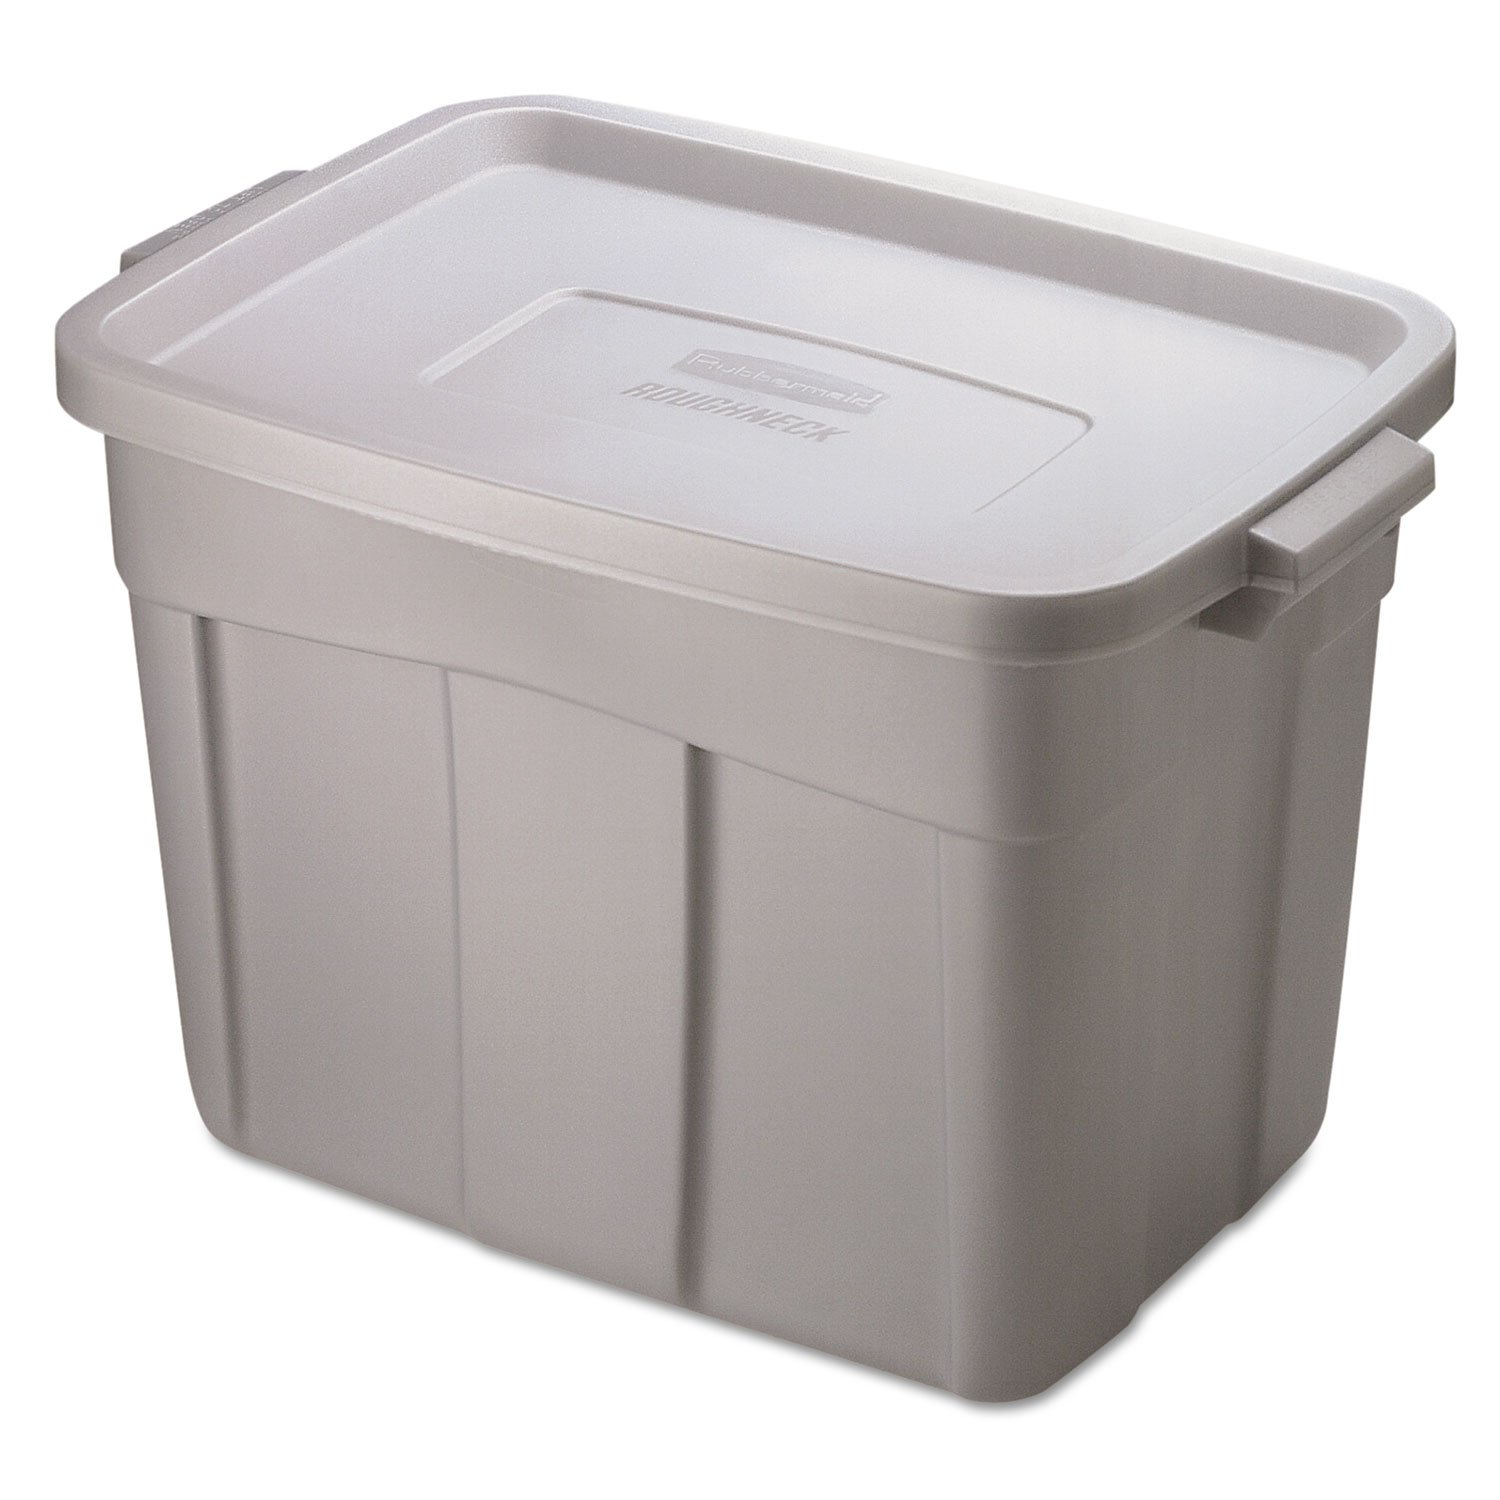 tub totes p in tubs premium qt rubbermaid clever clear bins tote store storage